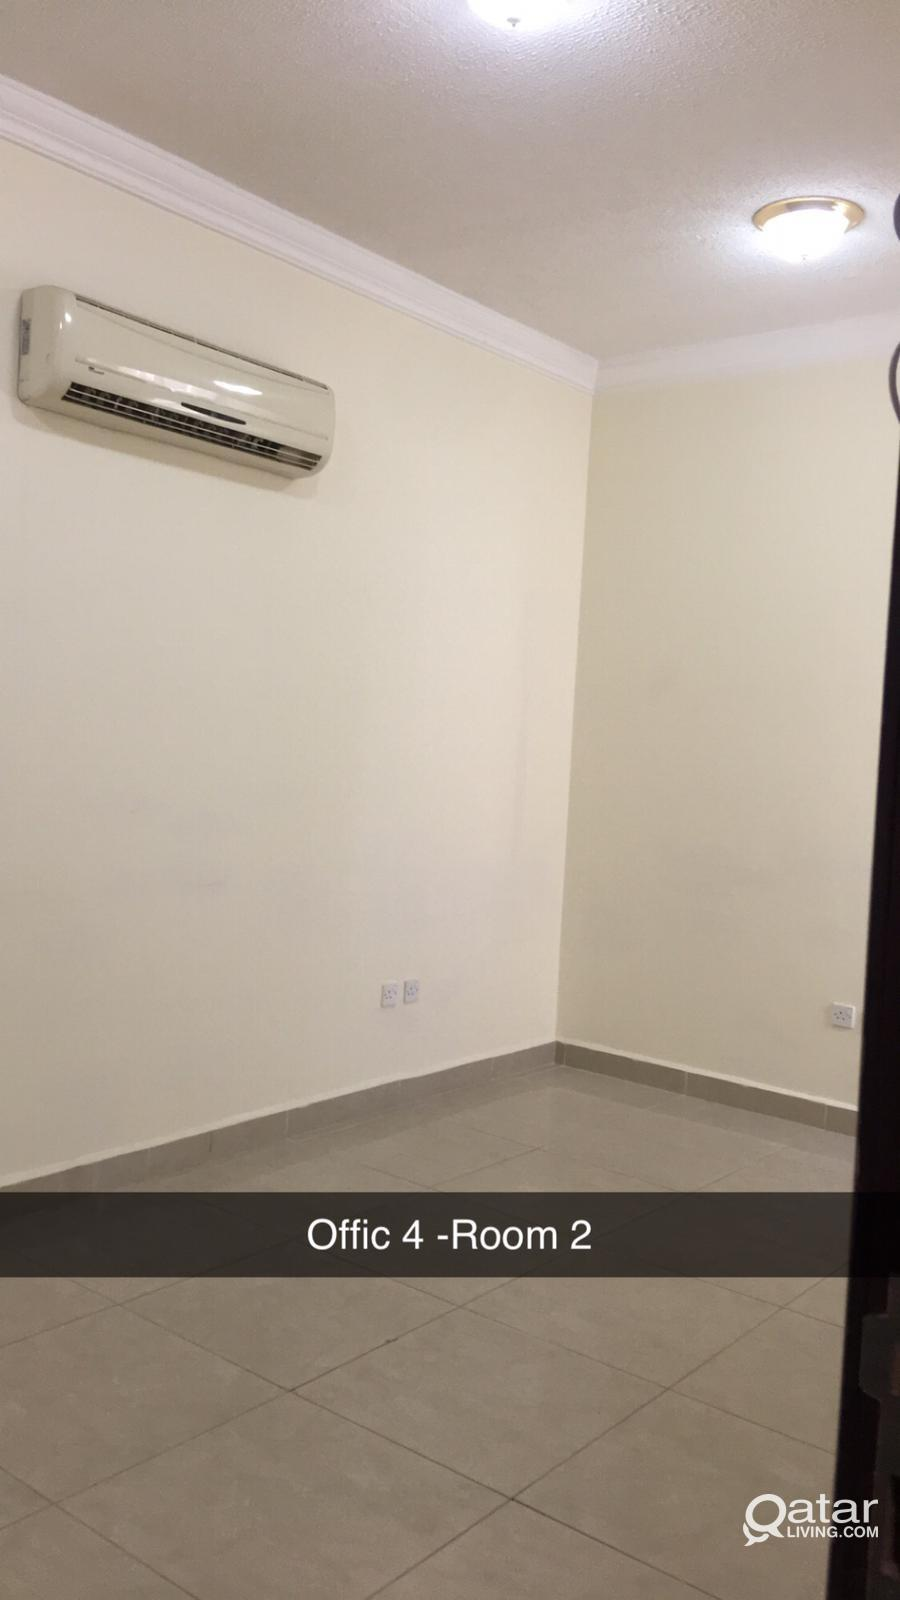 Unfurnished Office Space Available For Reasonable